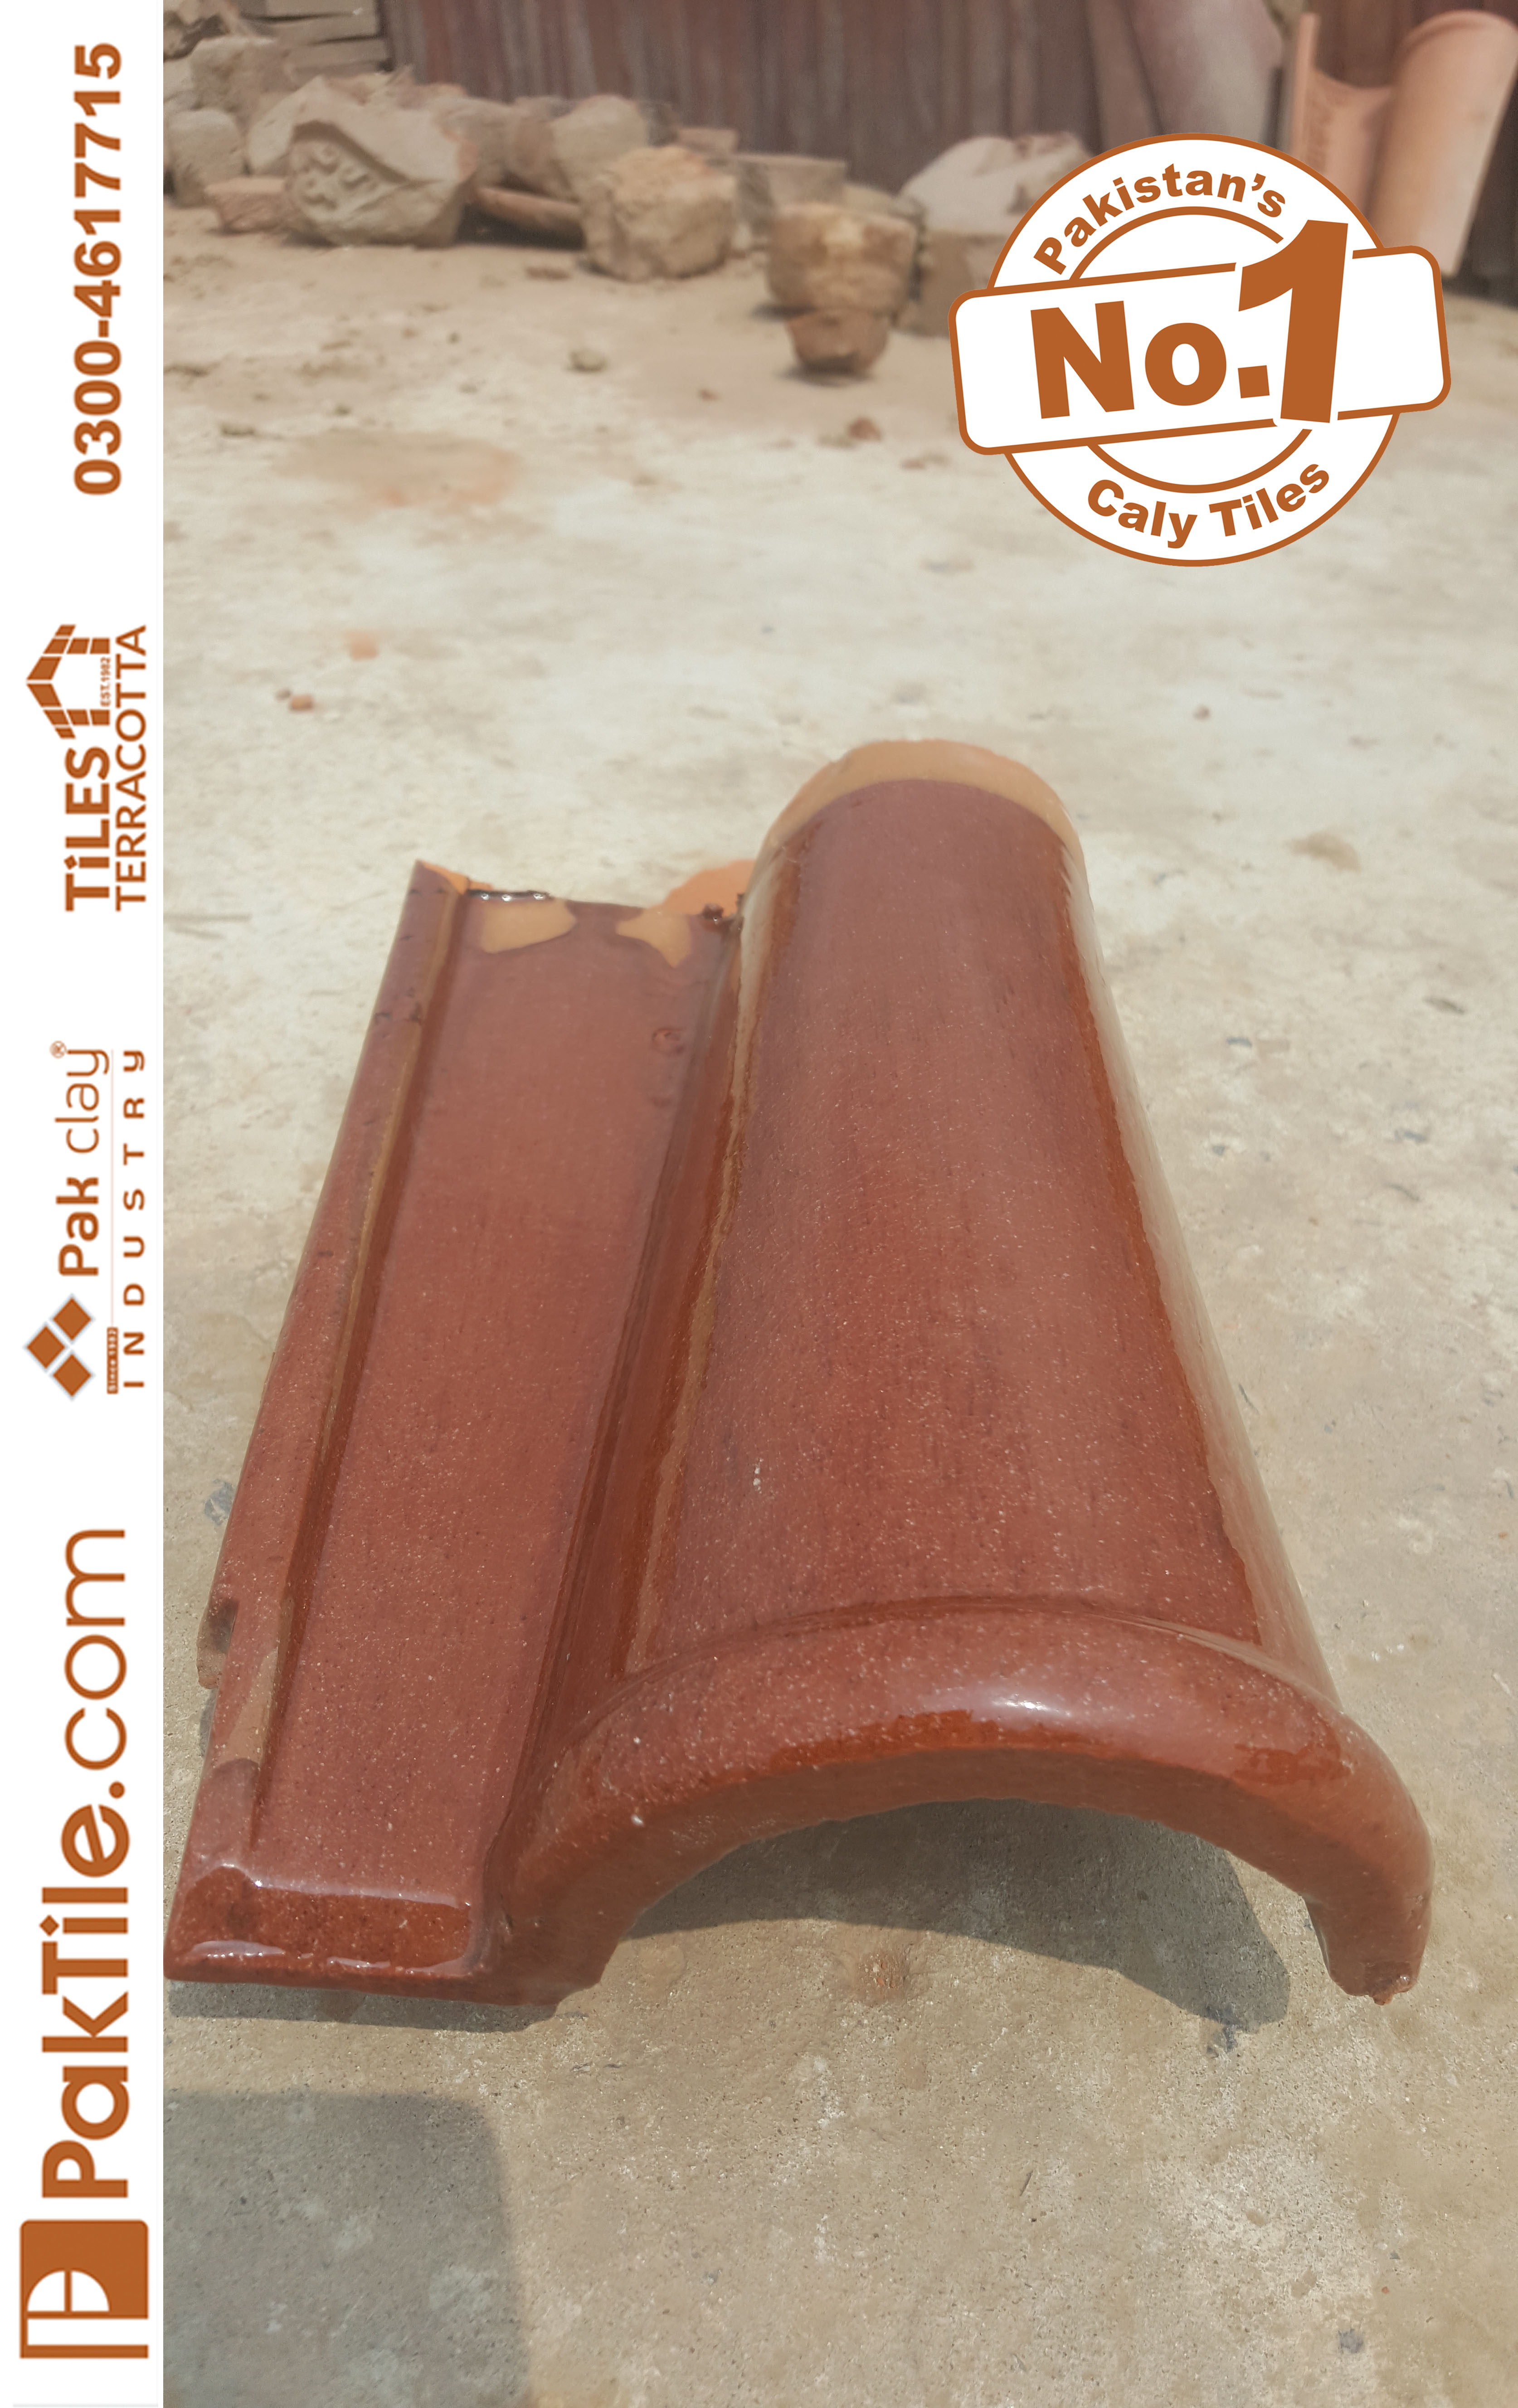 3 Pak clay ceramic Interlocking roof products shingles tiles price per square foot lahore images